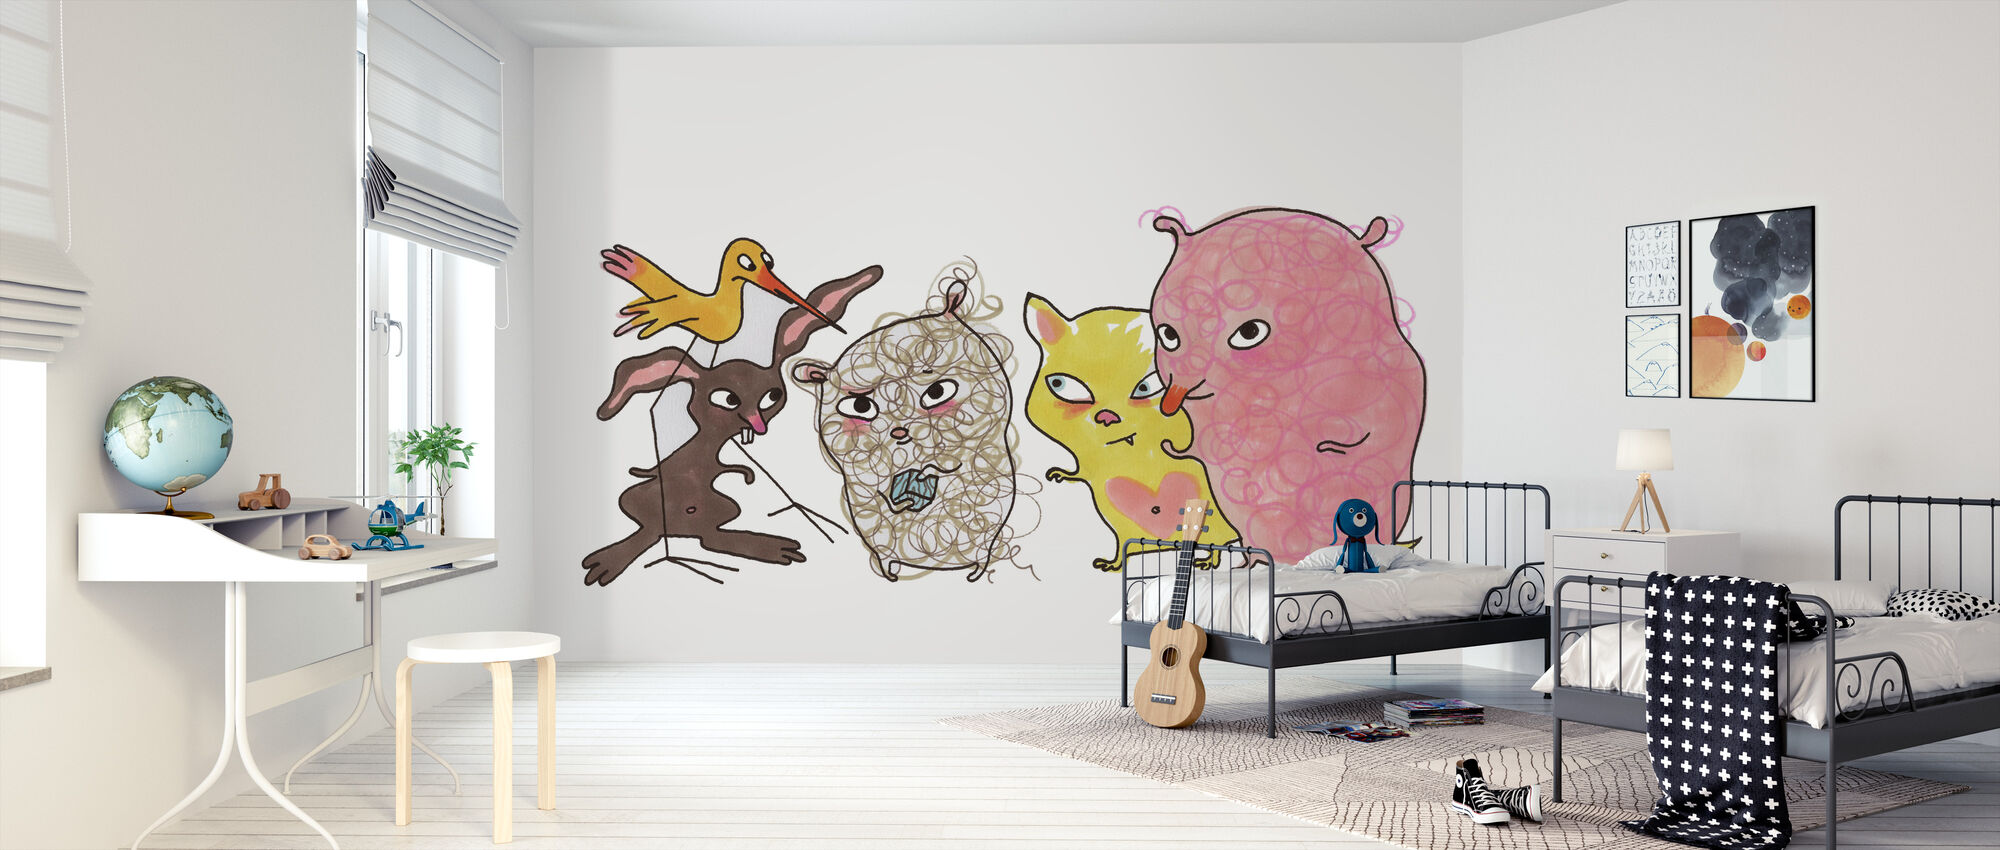 Vemdjuren 1 - Wallpaper - Kids Room